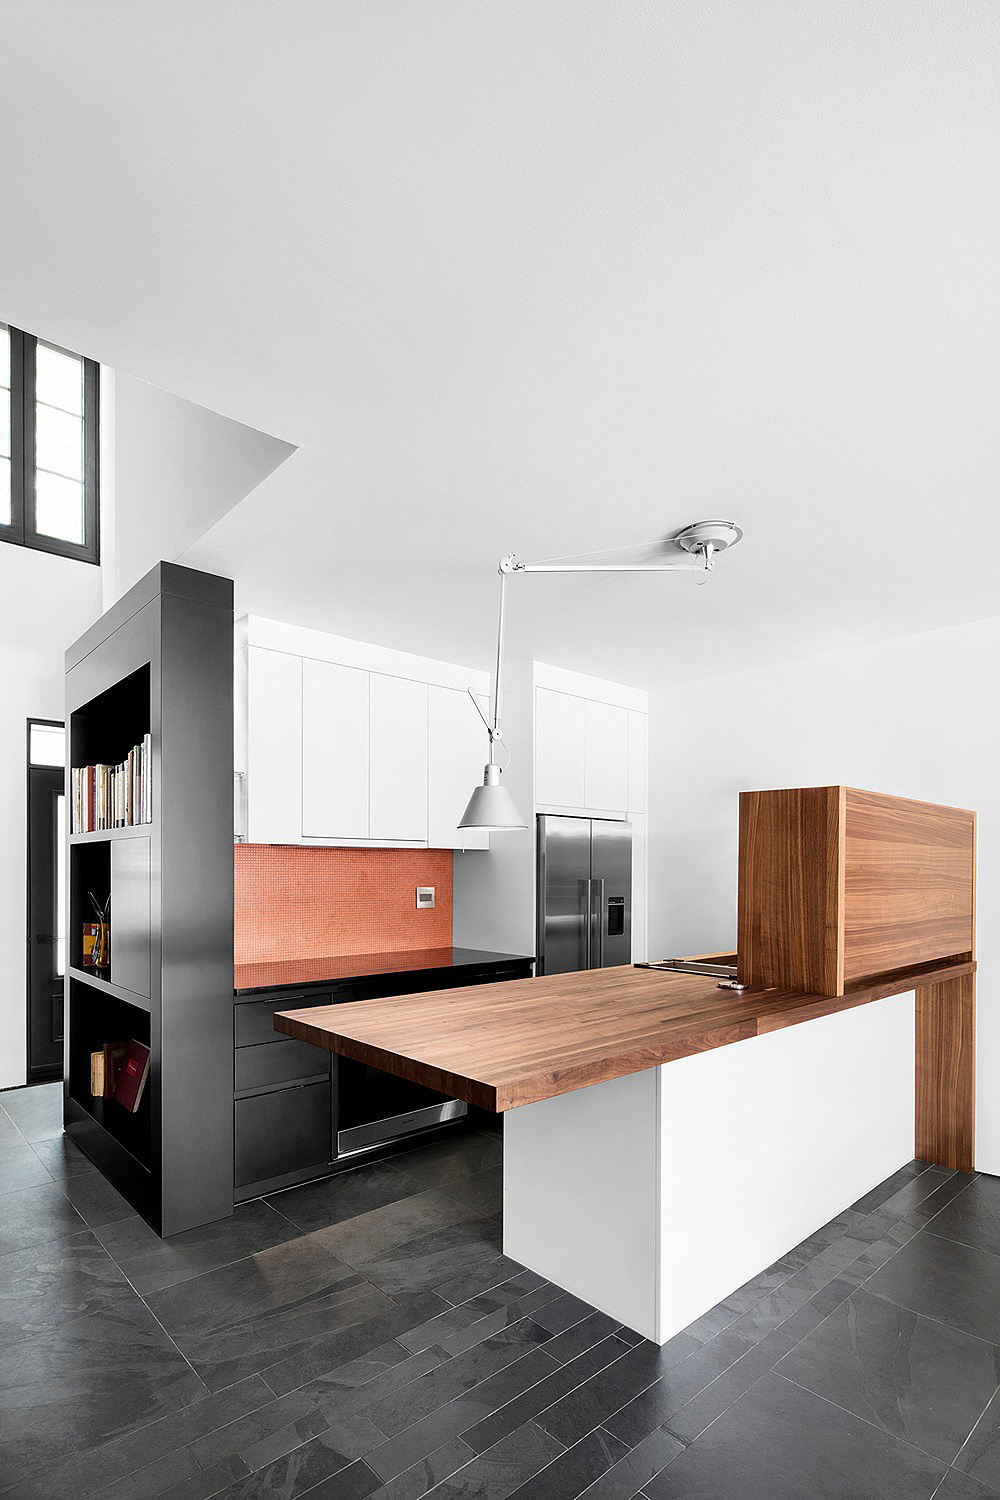 residence-lejeune-architecture-open-form (4)